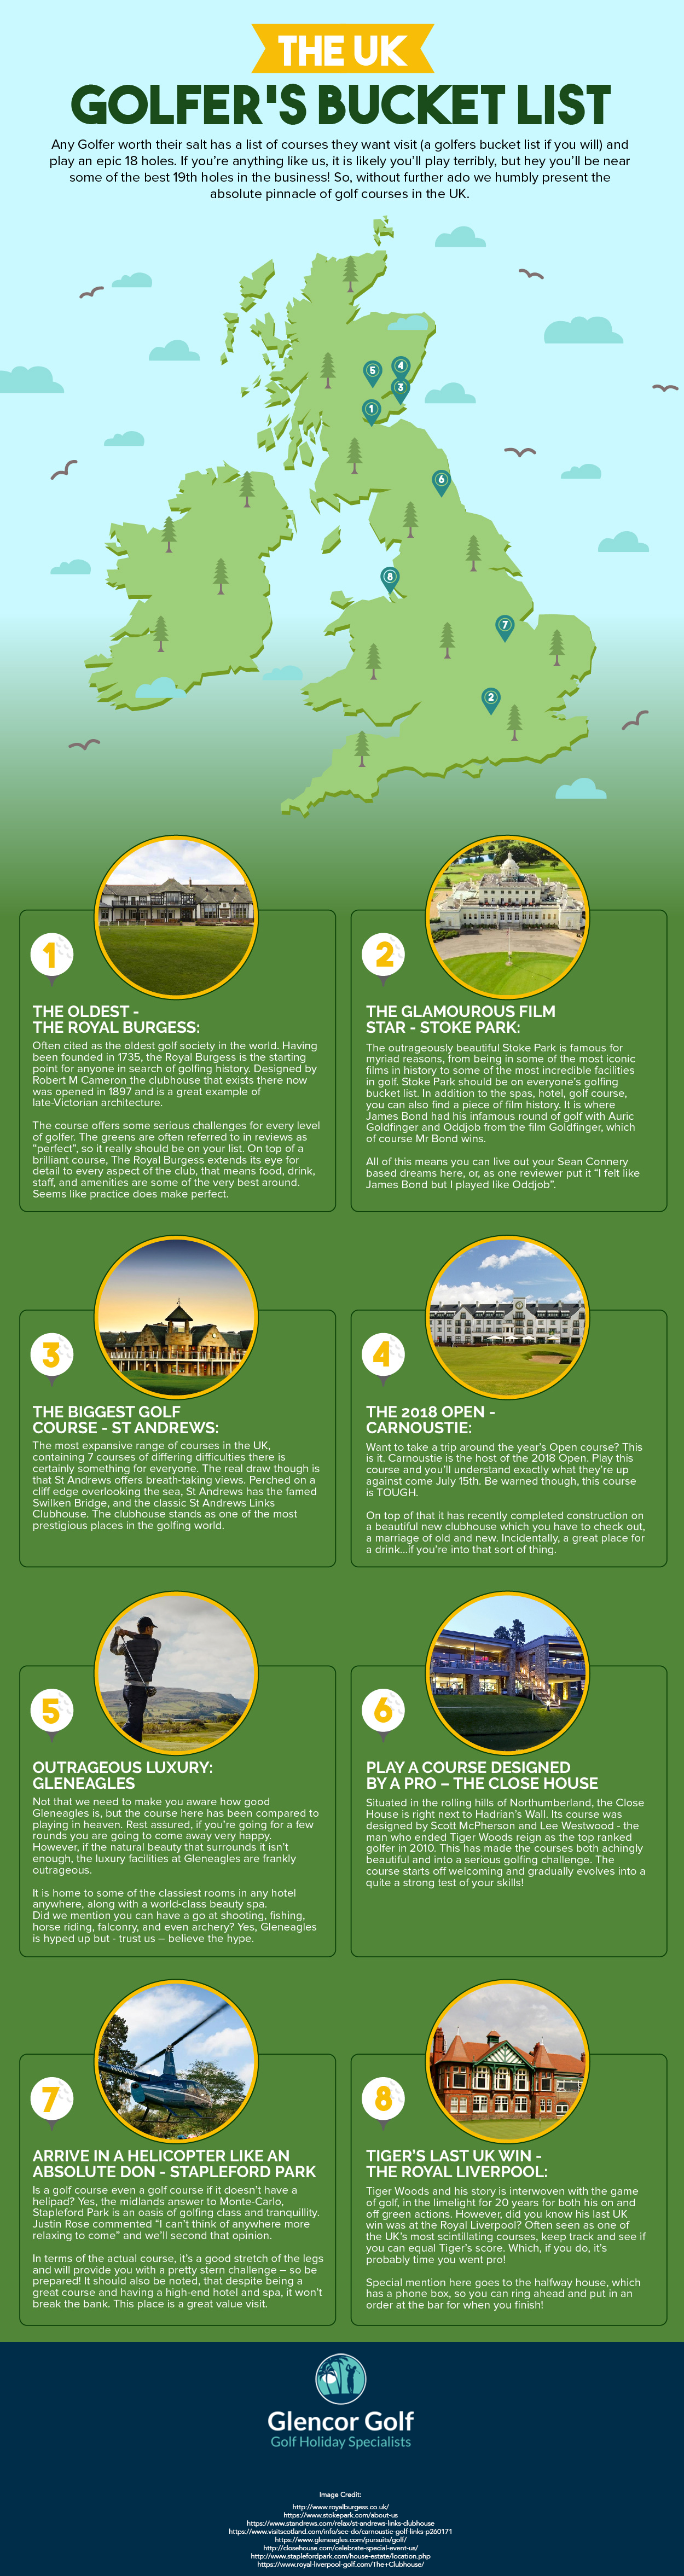 UK golfers bucket list